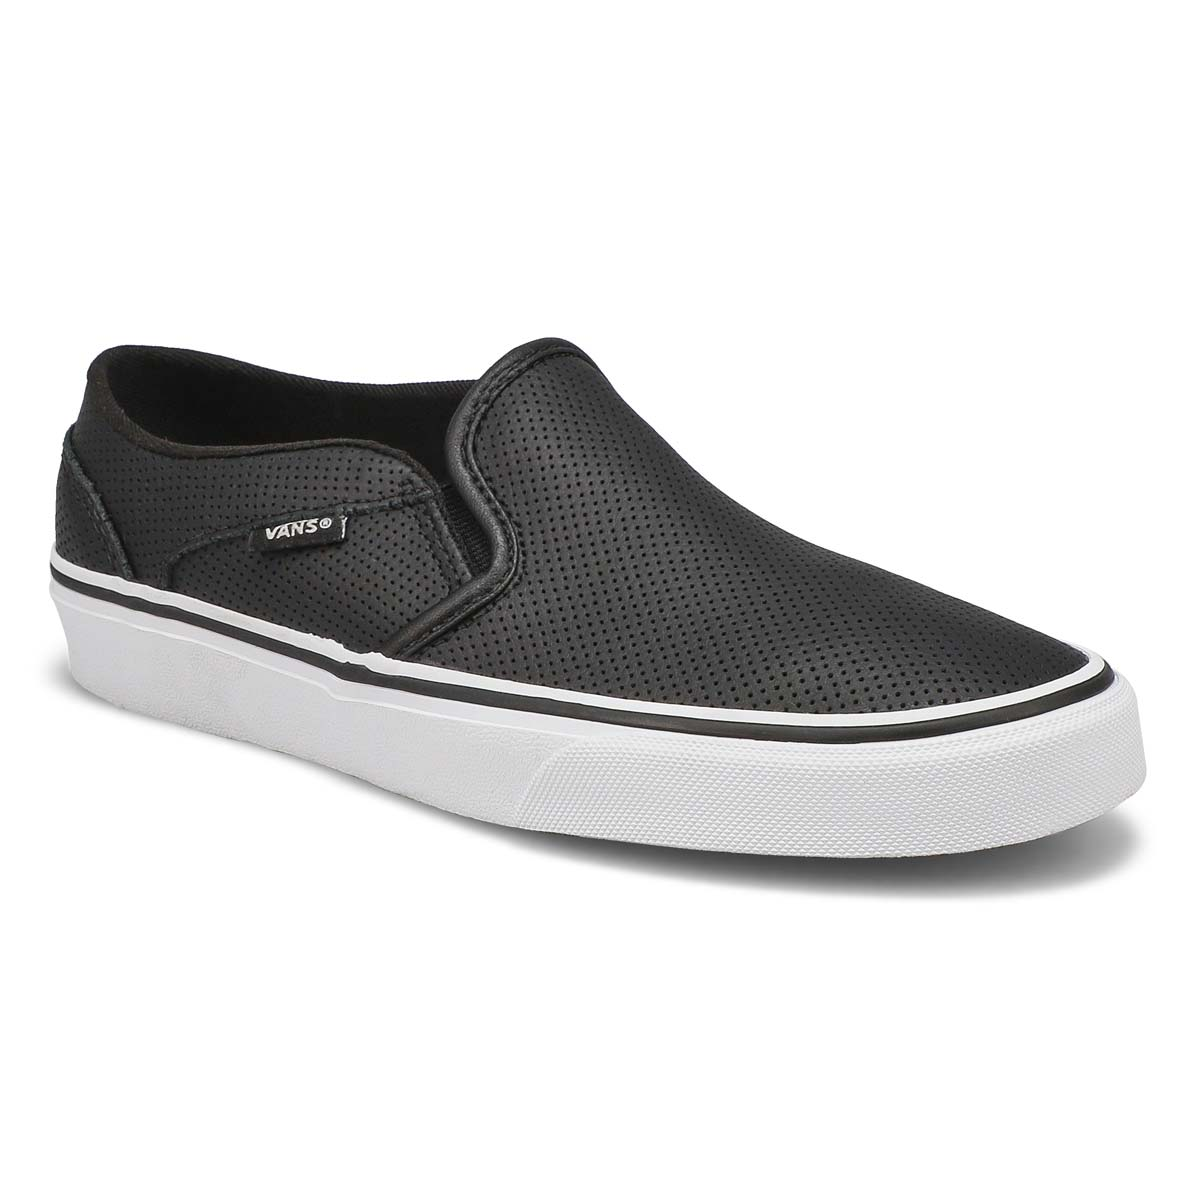 vans leather slip ons review